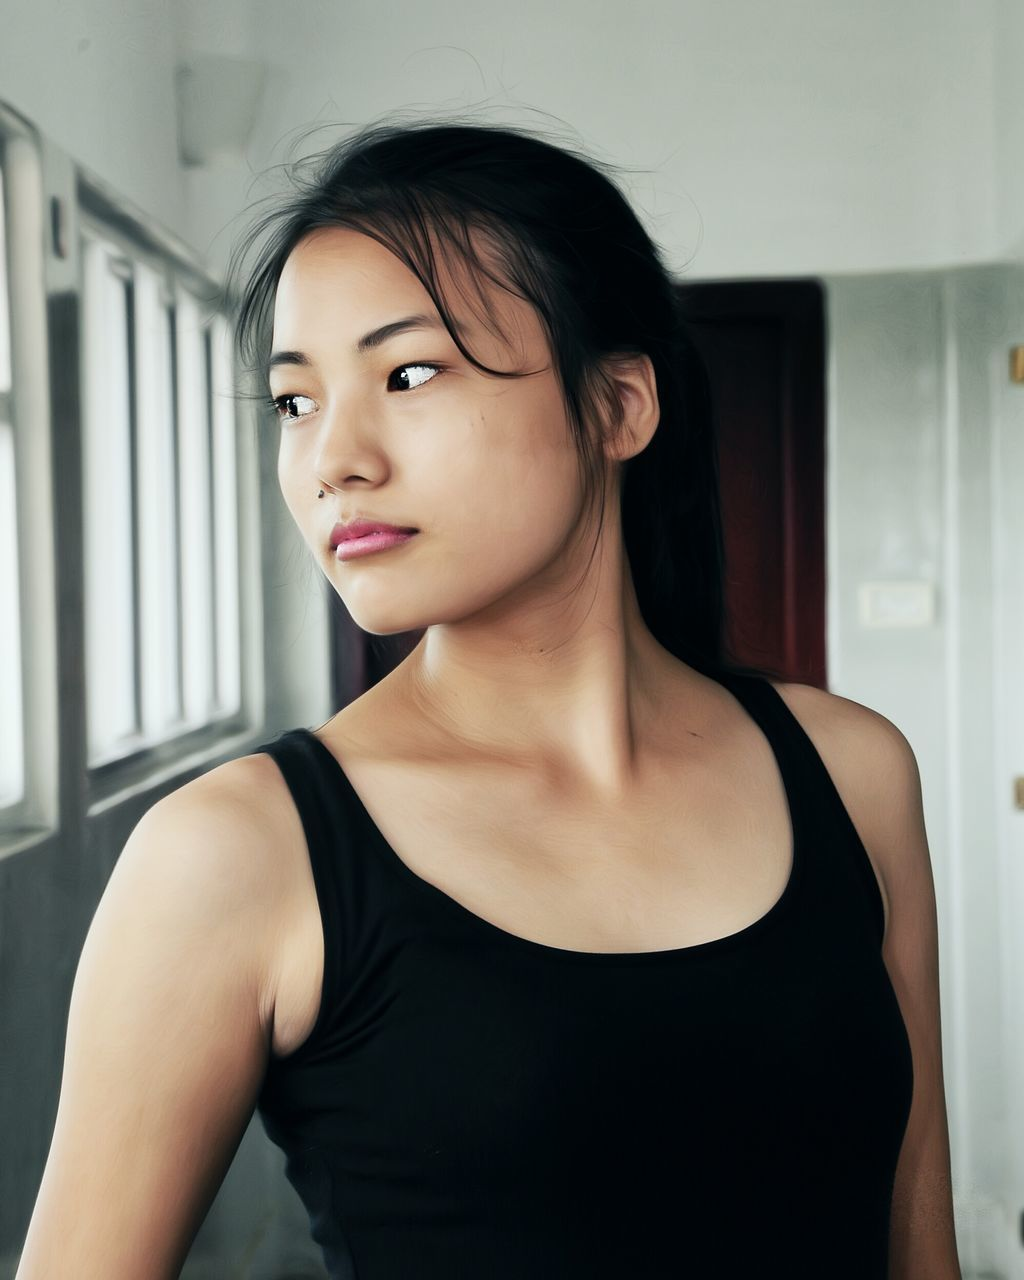 young adult, one person, real people, tank top, young women, beautiful woman, front view, lifestyles, indoors, fashion, headshot, close-up, standing, beauty, portrait, day